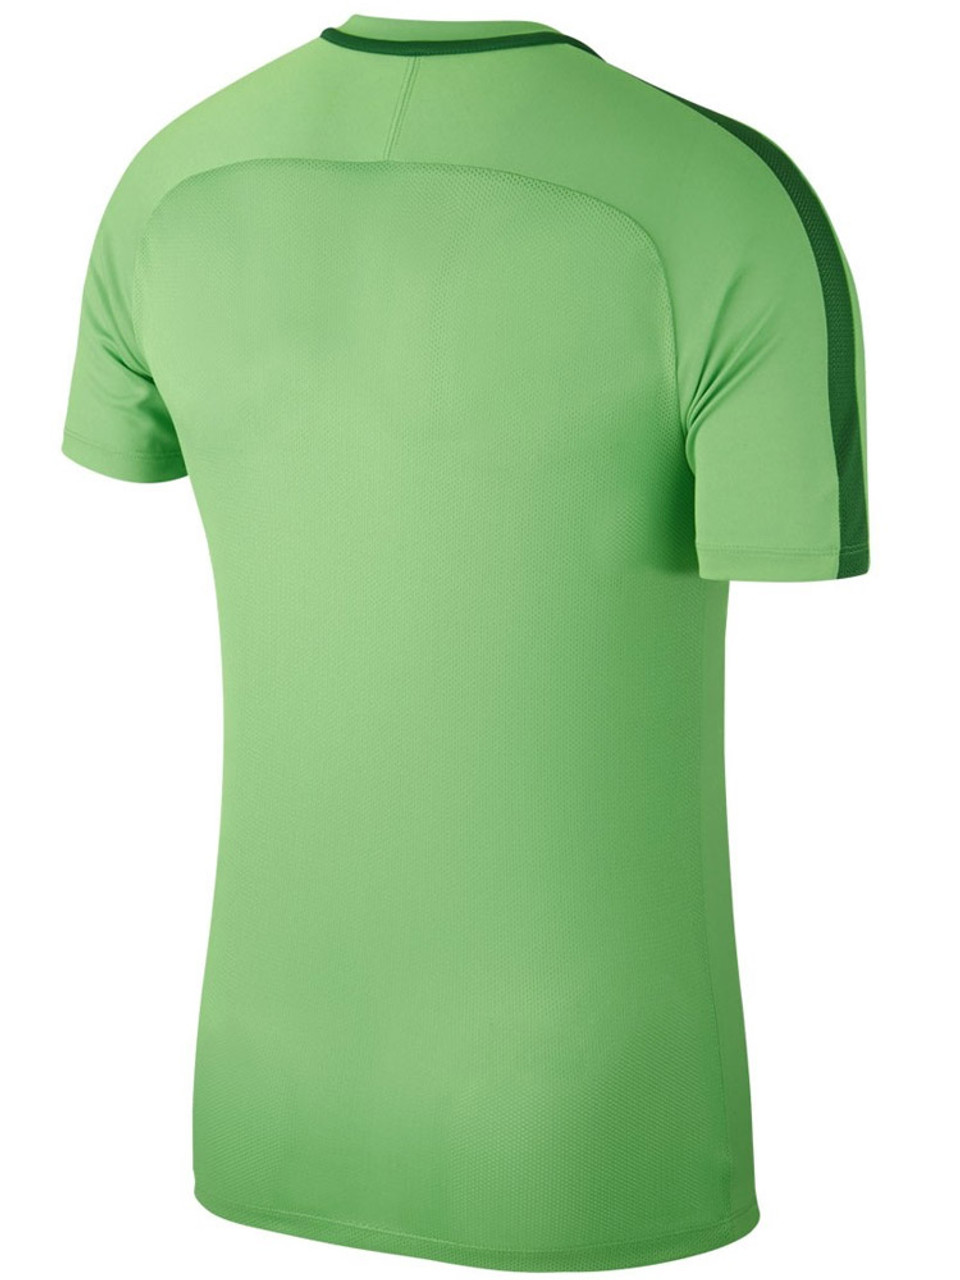 f9ce526895ddc Nike Academy  18 Jersey - Spark Green Pine Green - Mens For Sale ...